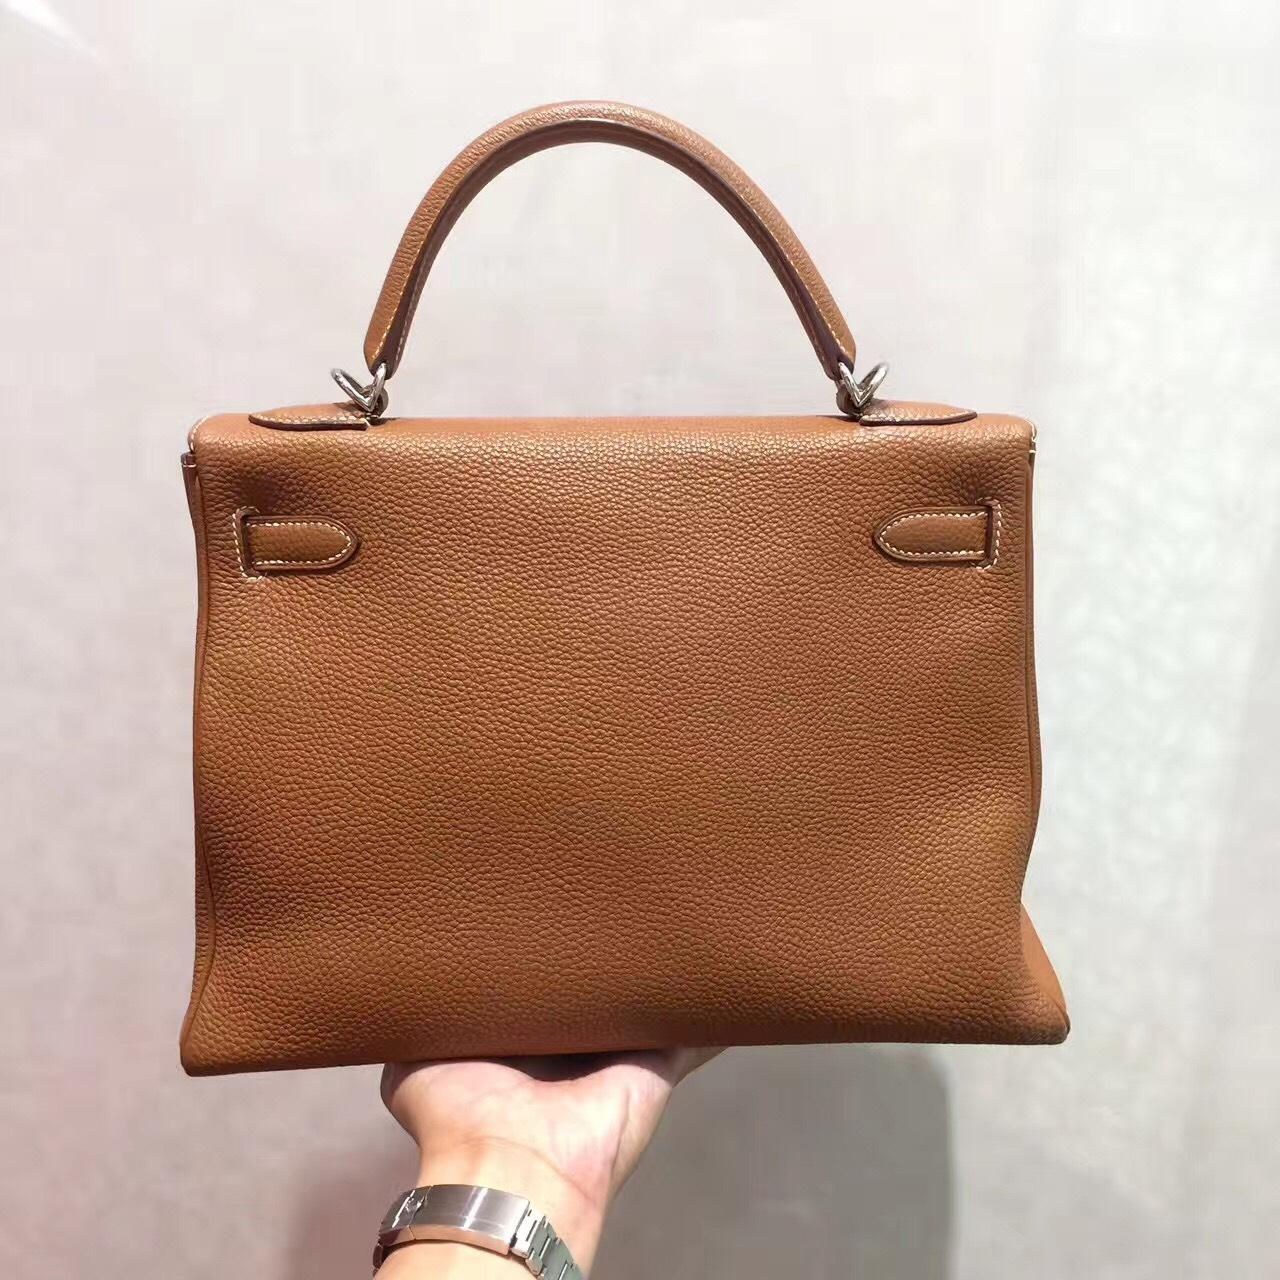 bd9728aa590cb ... official hermès kelly 32 gold togo leather tote tradesy ca0a2 19070 ...